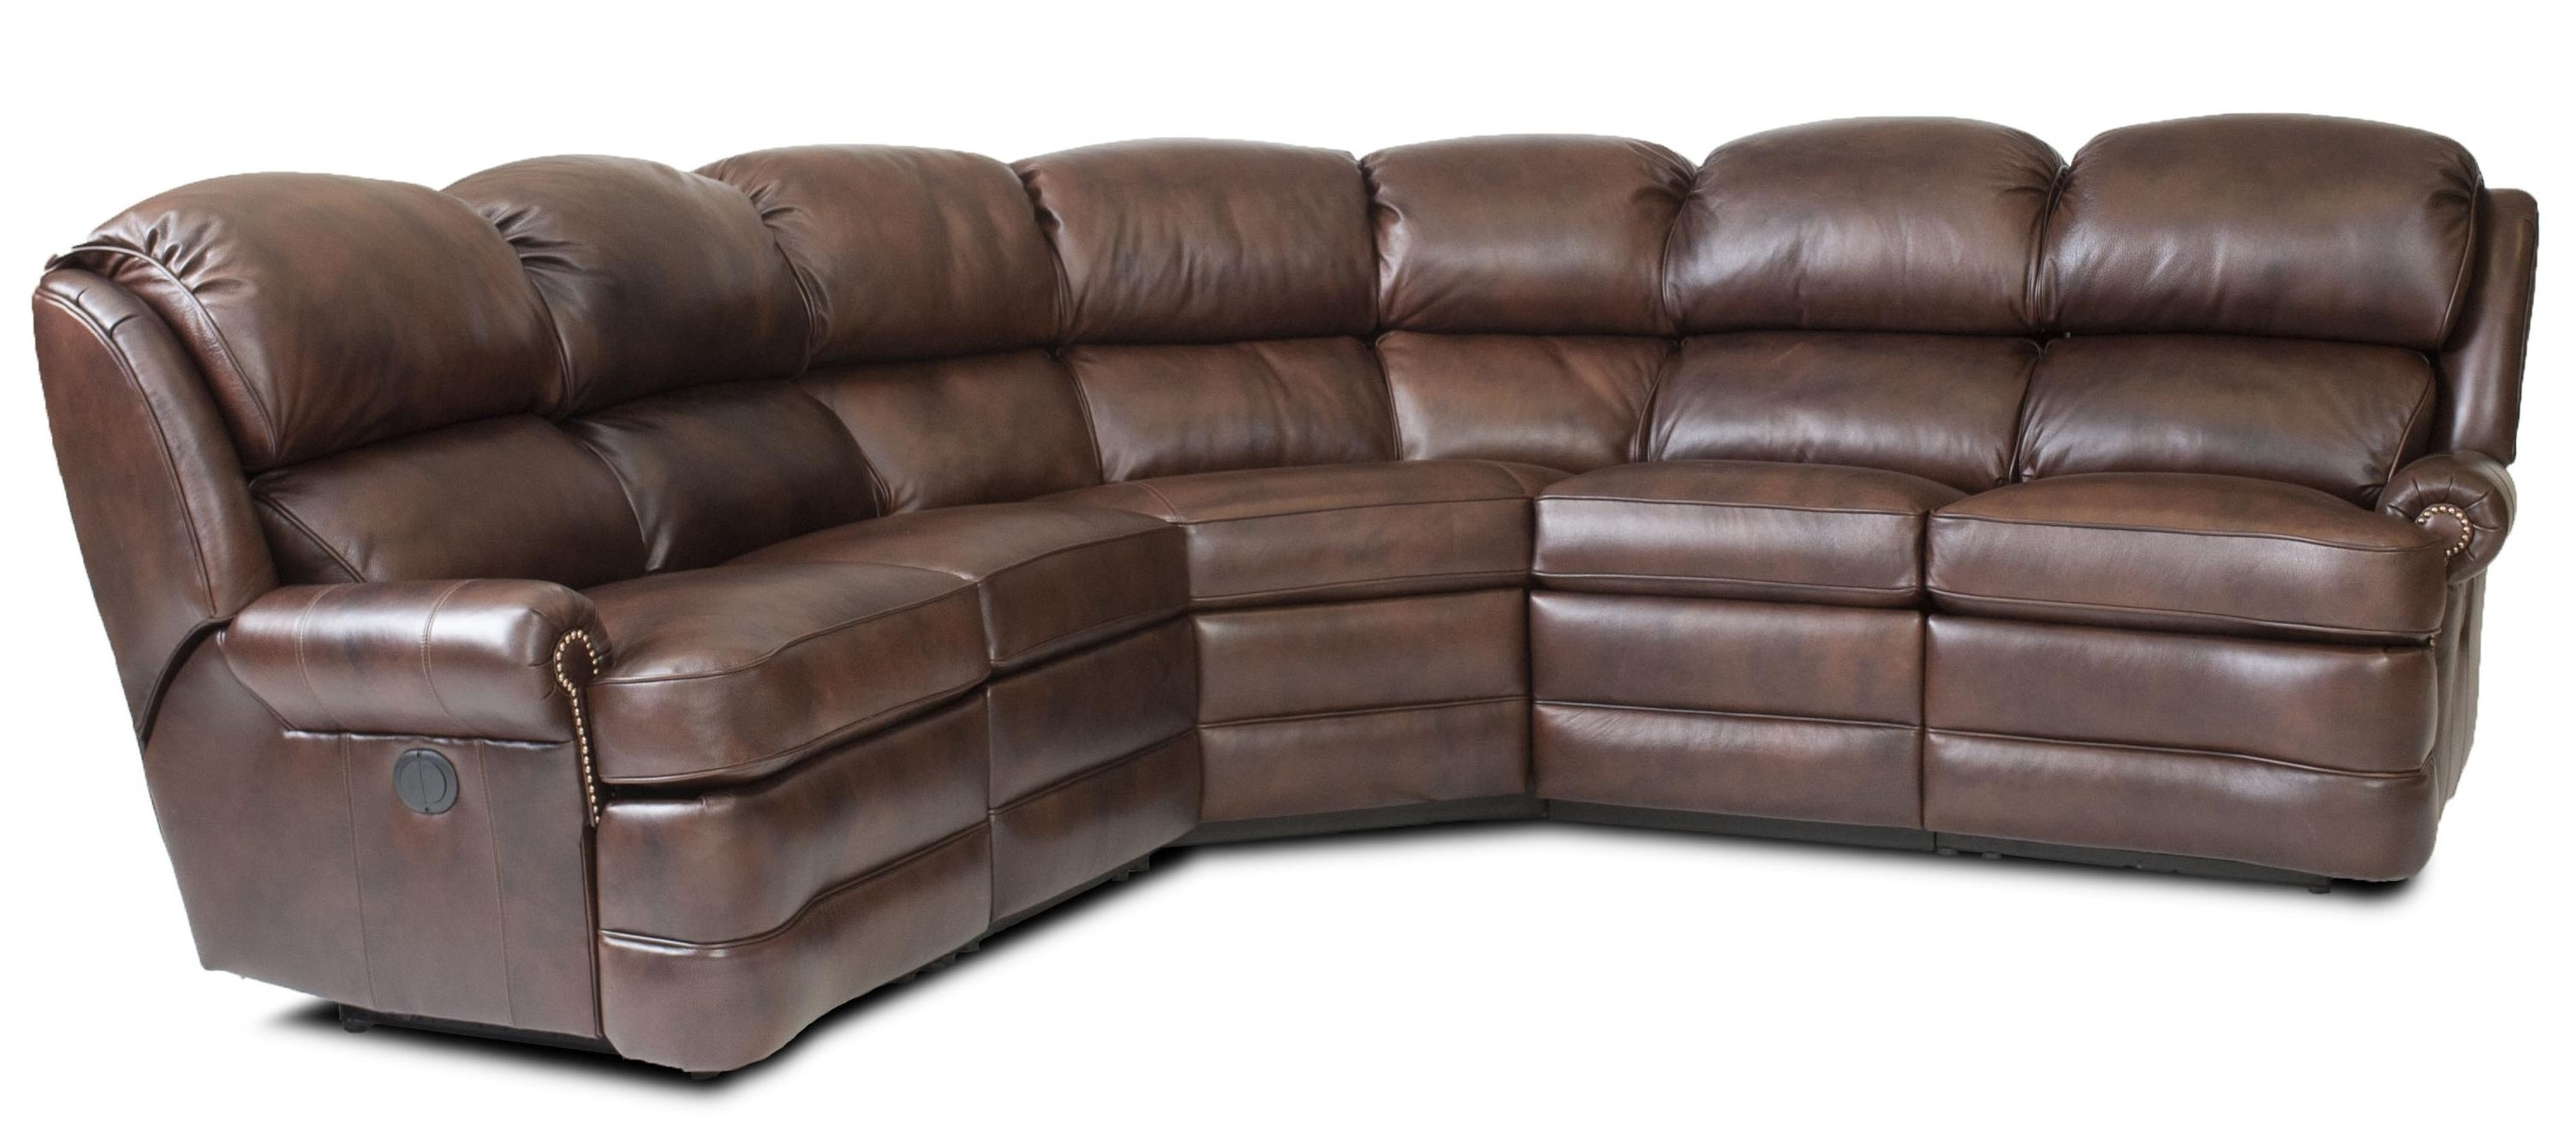 20 The Best Sectional Sofas Under 900 Inside Sectional Sofas Under  (Image 2 of 10)